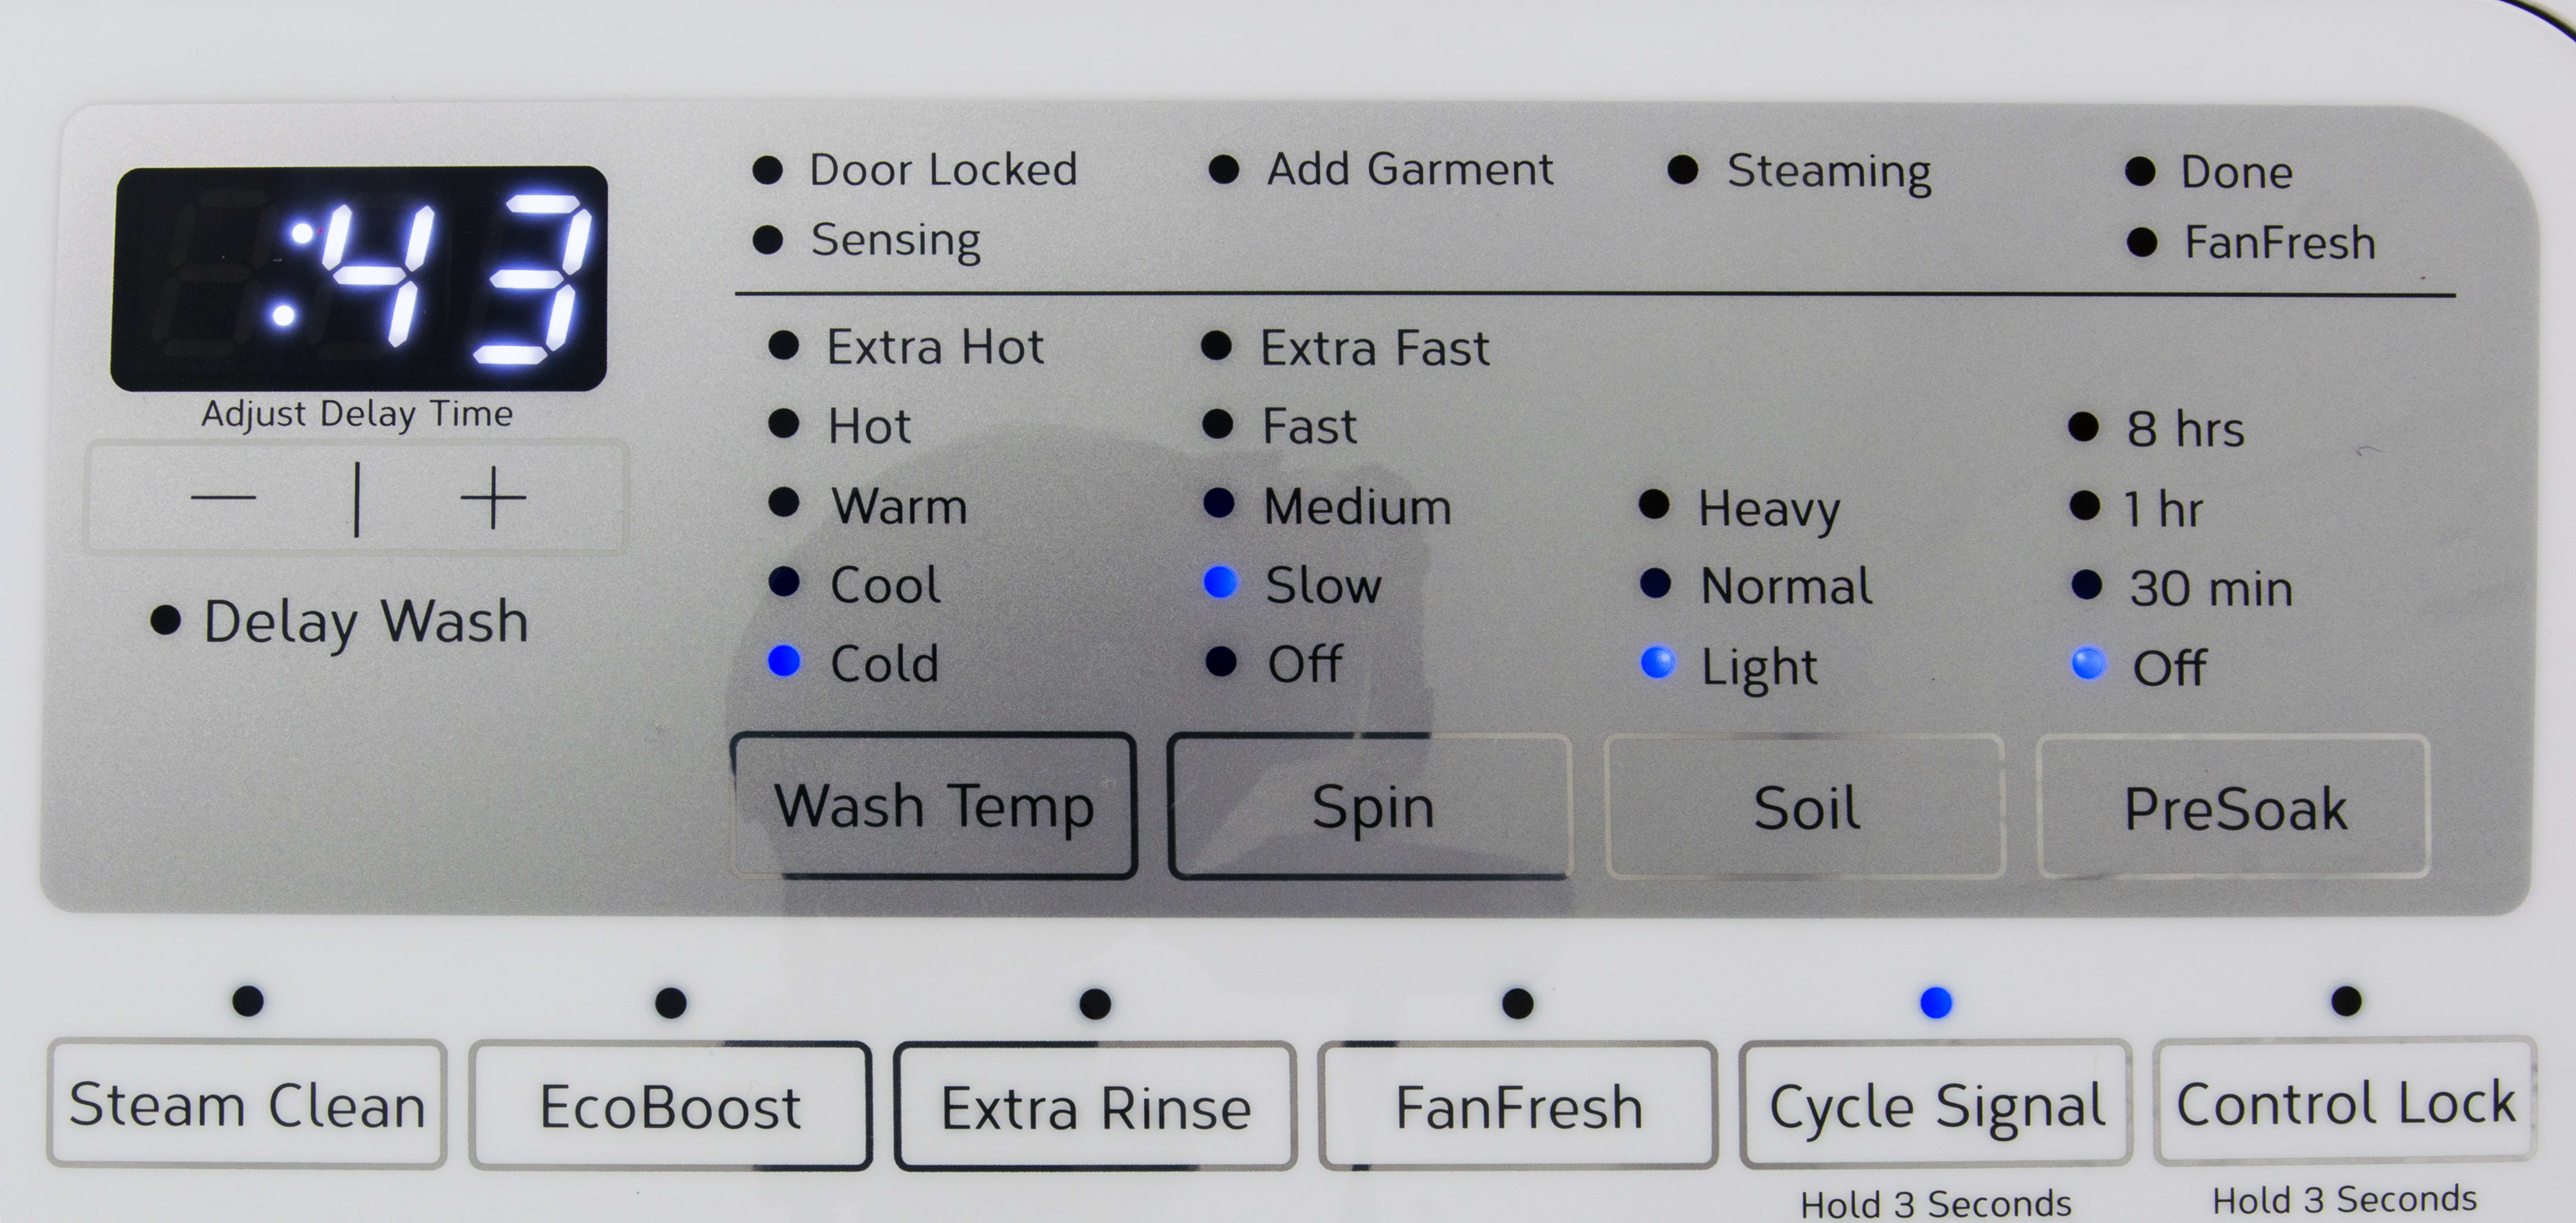 FanFresh is probably the best extra that WFW90 comes with. When activated, it can keep laundry fresh for 12 hours.